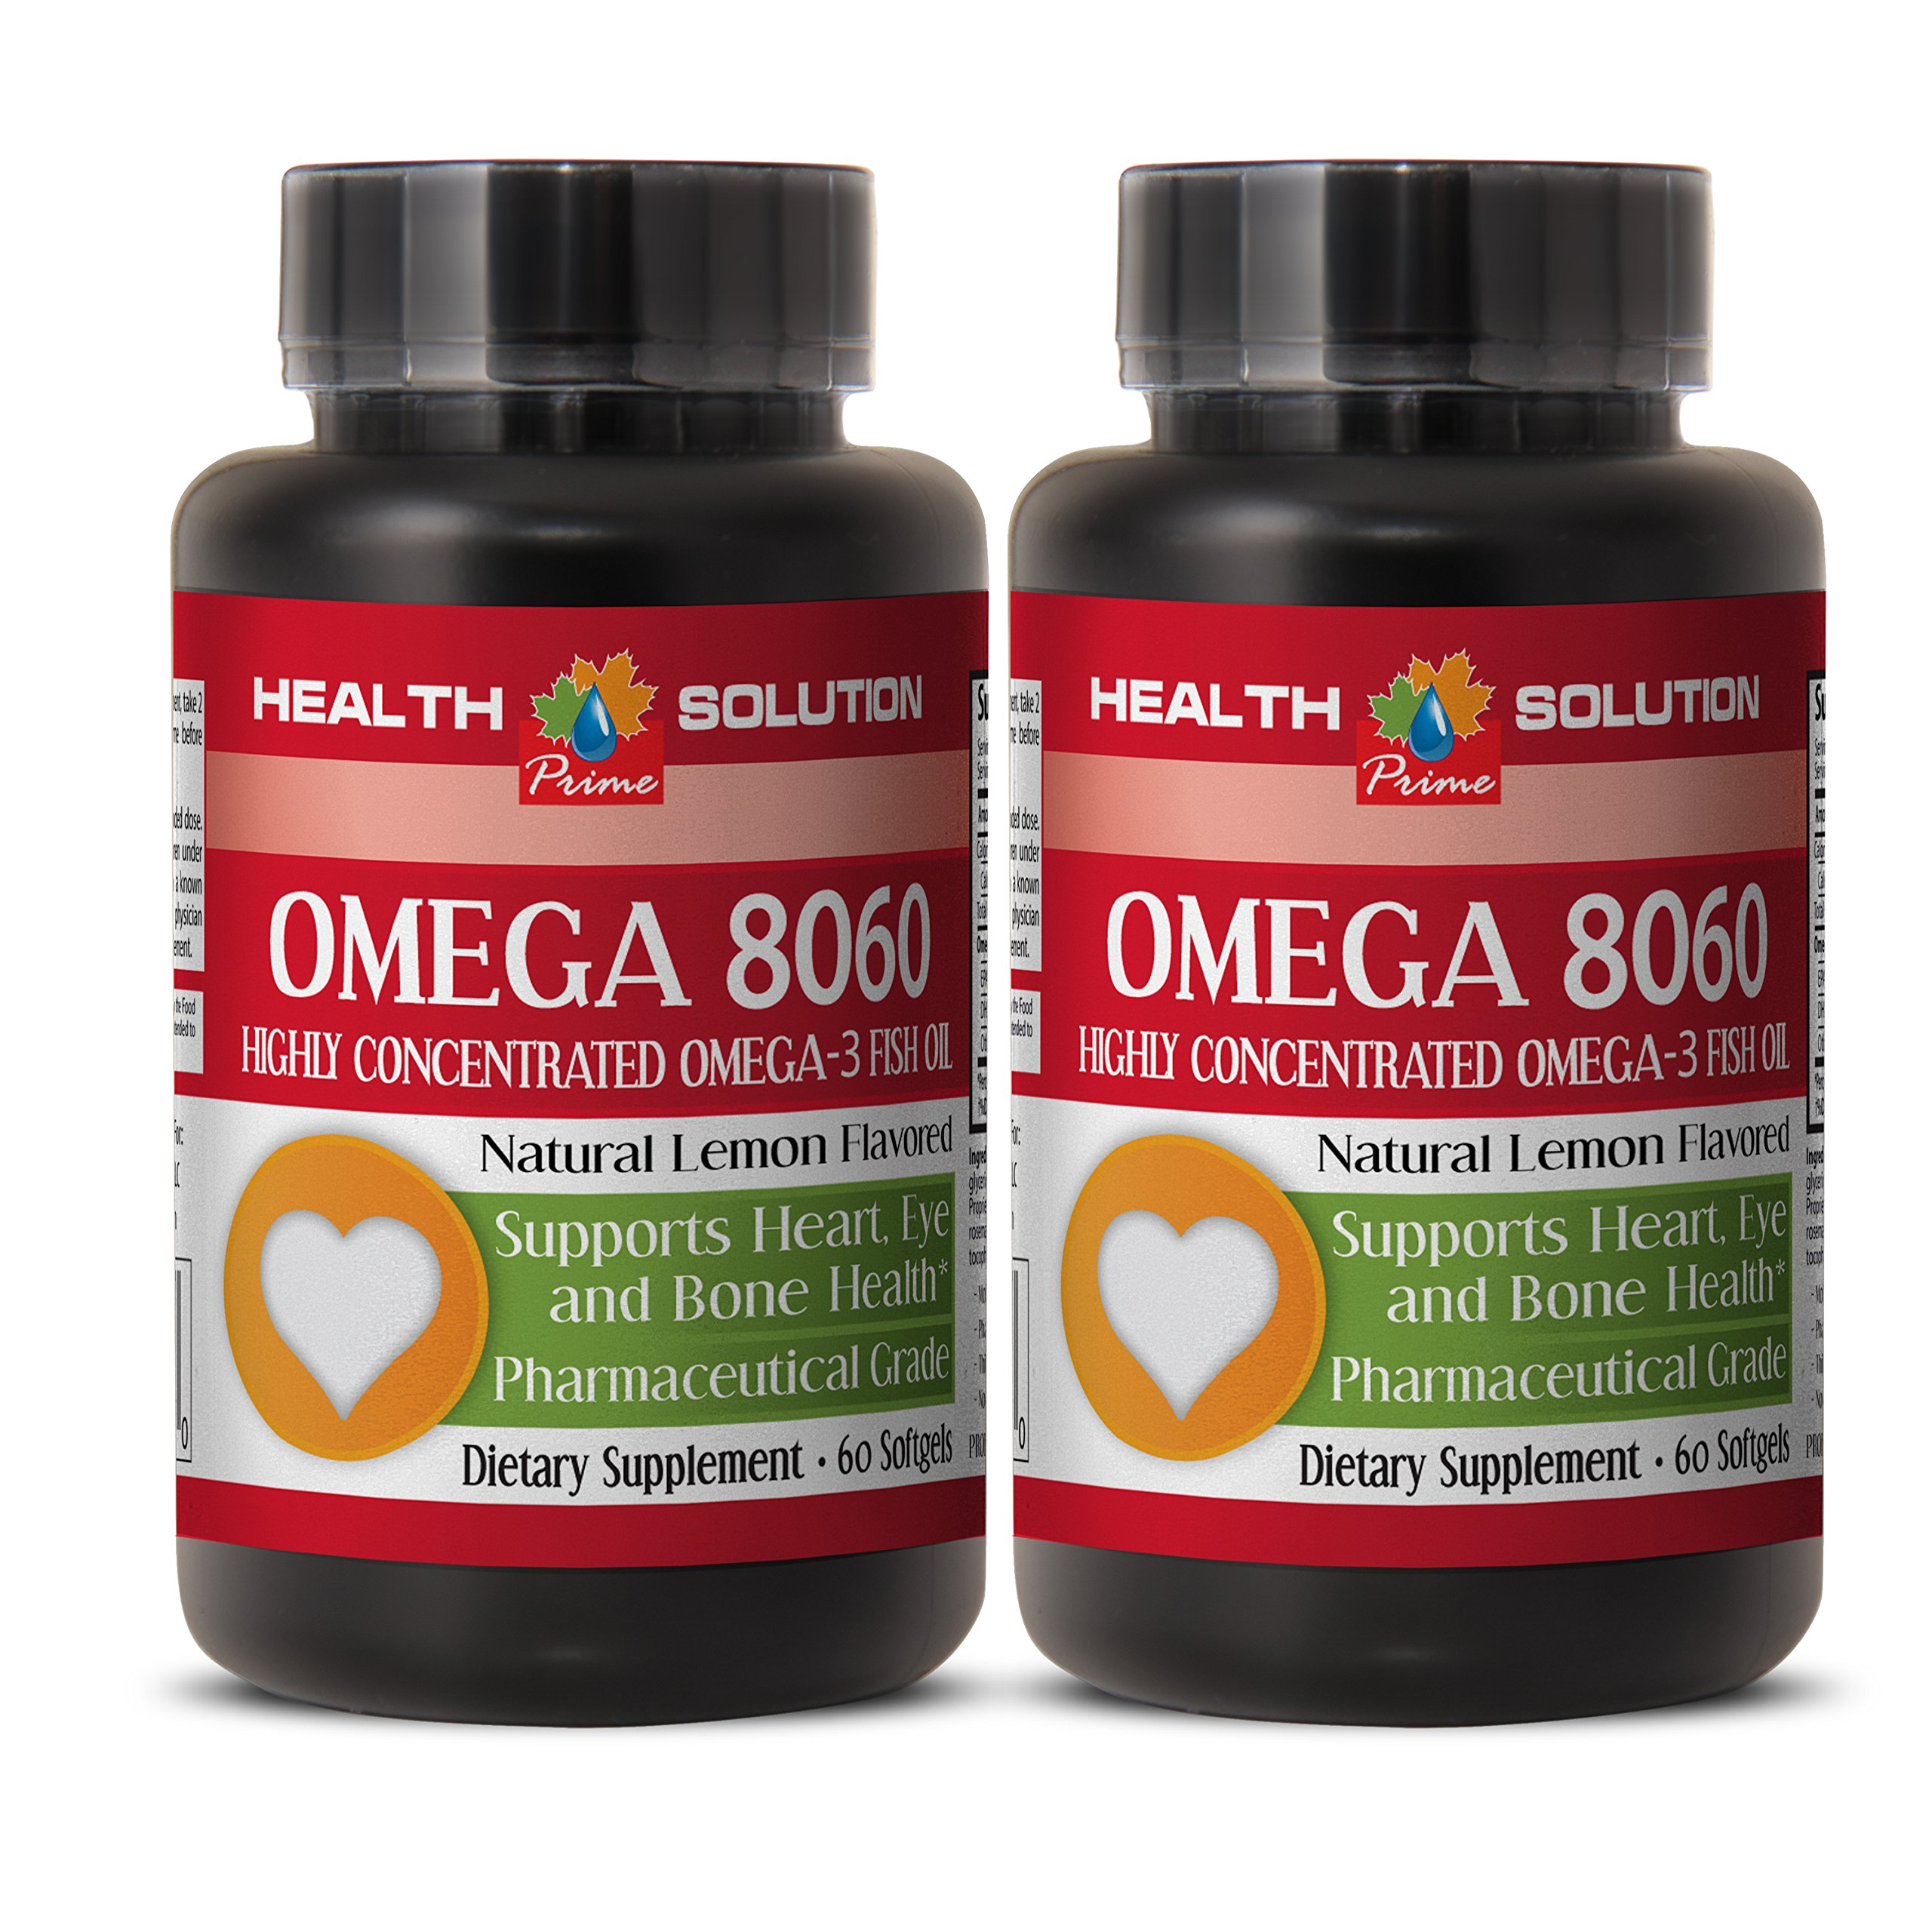 Immune support in dogs - OMEGA 8060 (HIGHLY CONCENTRATED FISH OIL) - Omega 3 eyes - 2 Bottle 120 Softgels